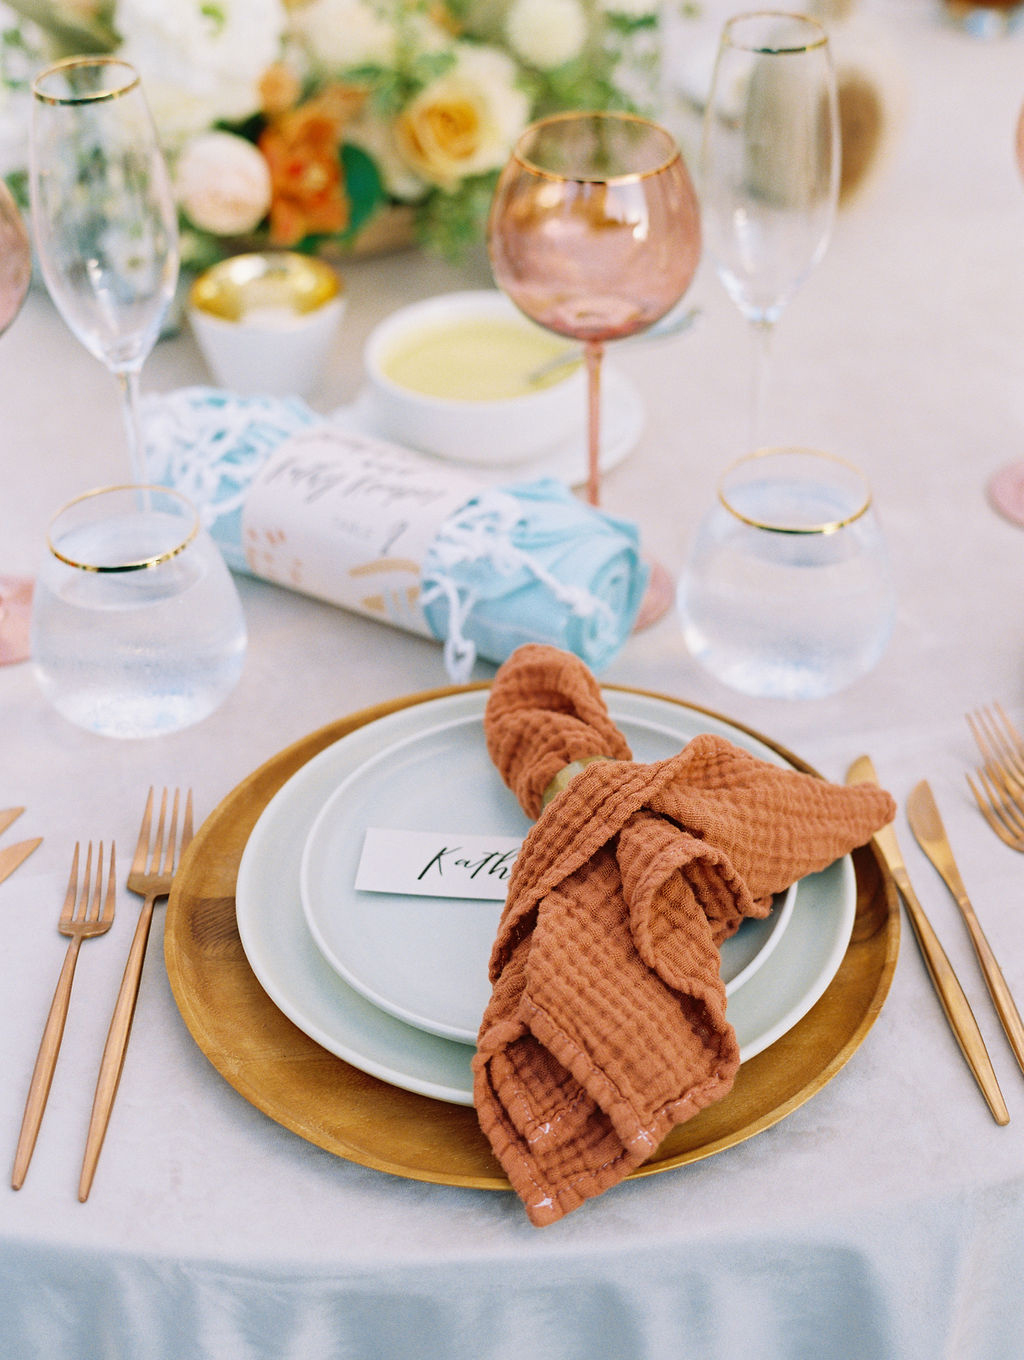 sara trisdan wedding reception plate setting with burnt orange napkin